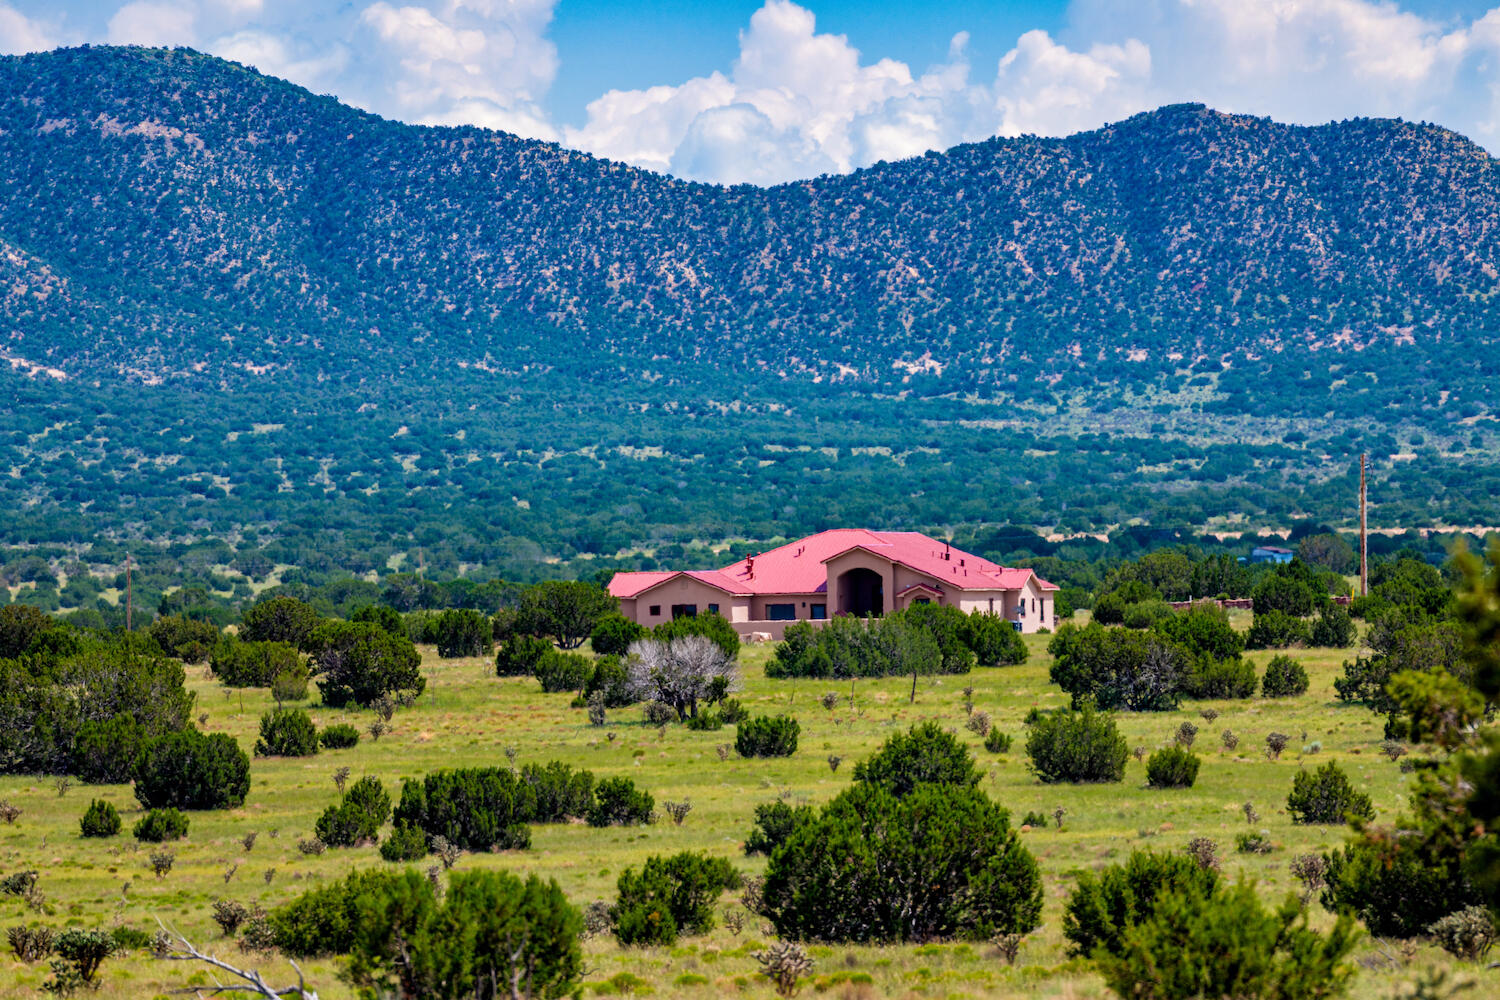 Commune with nature, find your zen, surround yourself with the most majestic backdrop, get away from the fast paced world or if you need a multi-generational compound, in need of inspirational office space to write that book or story? This modest ranch situated in the most scenic part of Socorro county is calling your name. Nestled by the Manzano mountain range, part of Cibola National Forest, near the town of Mountainair this jewel includes 149 acres of pristine land, 30 acres fenced around custom built home featuring 3 bed, 3 bath, 2 office spaces and much more. Entering through custom gates in to the 3500+ Sqft of living space the details are everywhere. Solid wood door w/stained glass, barreled ceiling, beautiful tile work greet you at the entrance.